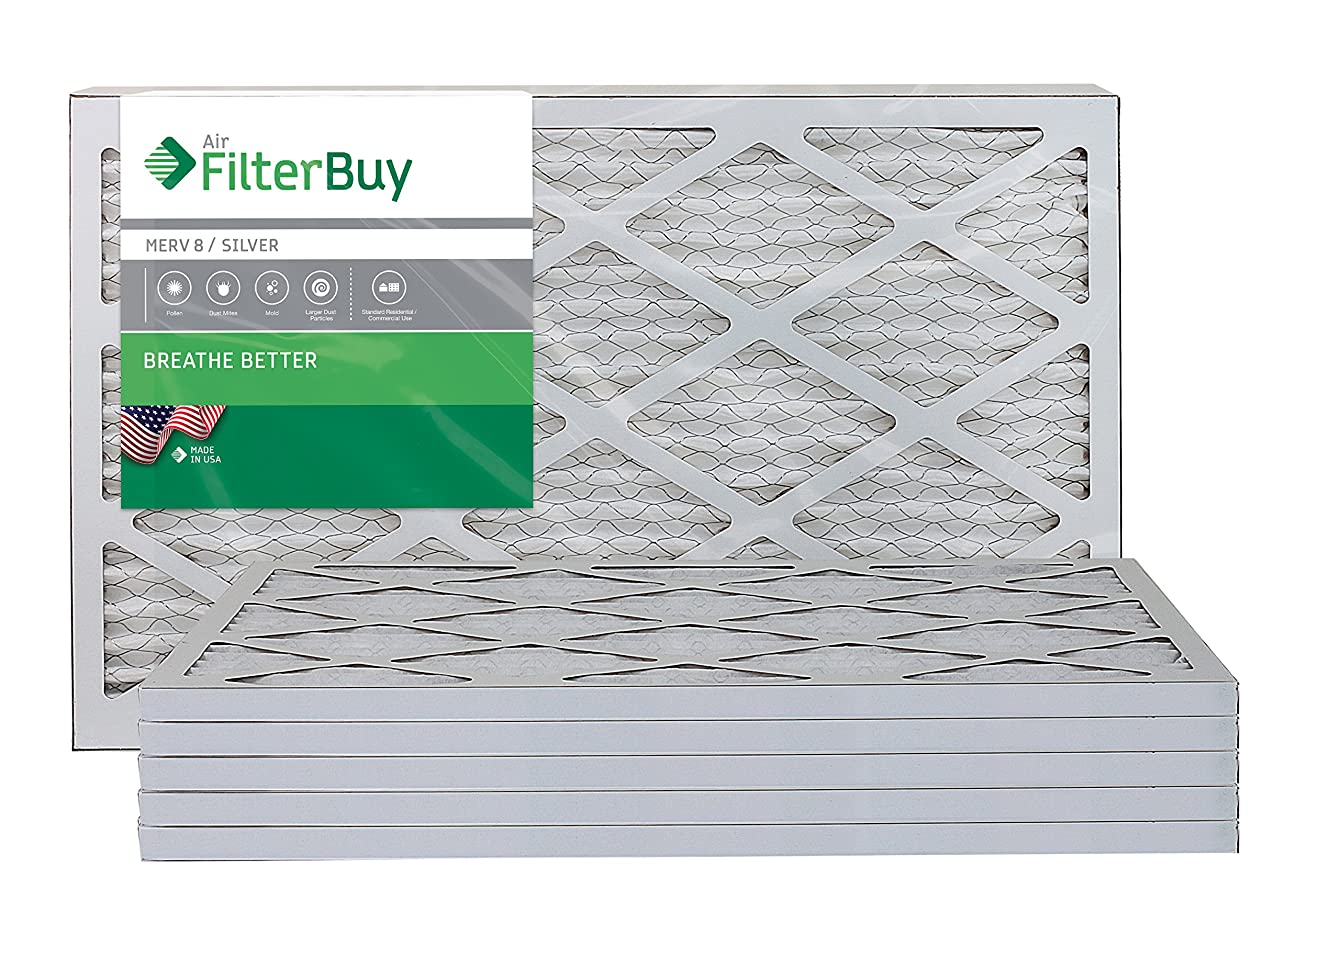 FilterBuy 13x21.5x1 MERV 8 Pleated AC Furnace Air Filter, (Pack of 6 Filters), 13x21.5x1 – Silver. Comparable to Bryant Carrier KFAFK0112SML.